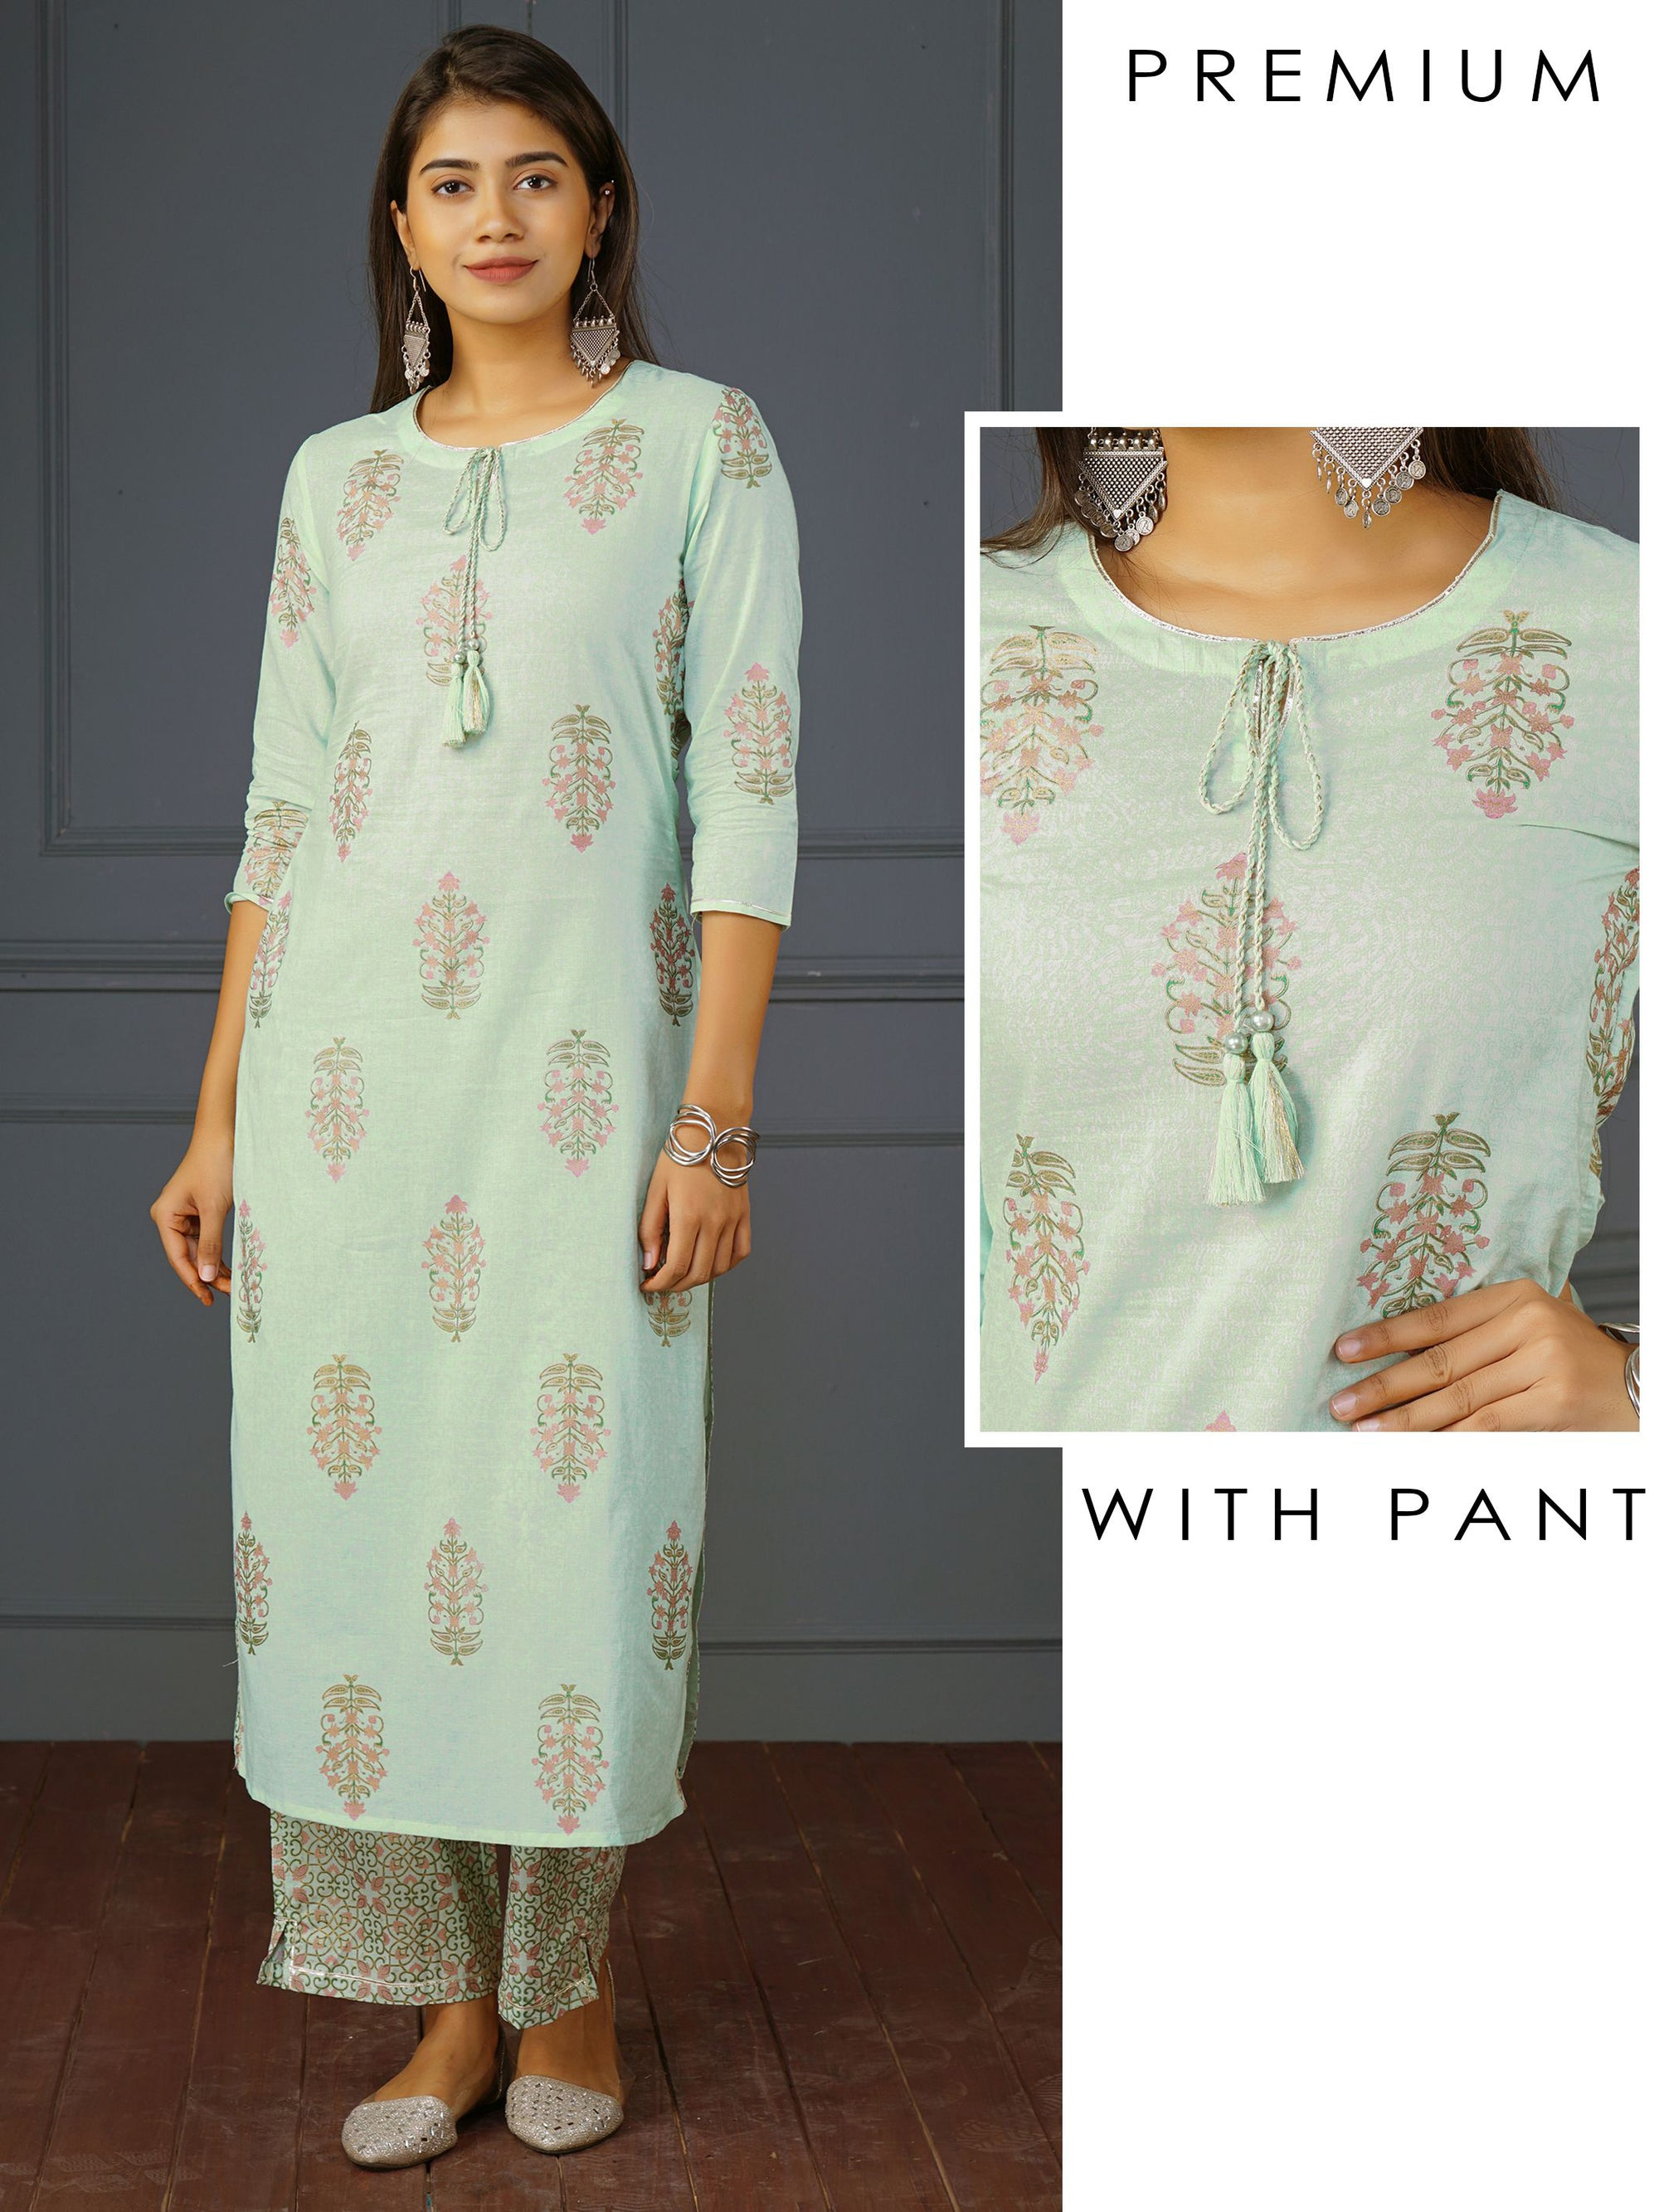 Floral Printed Kurti&Dabu Printed Pant Set – Mint Green